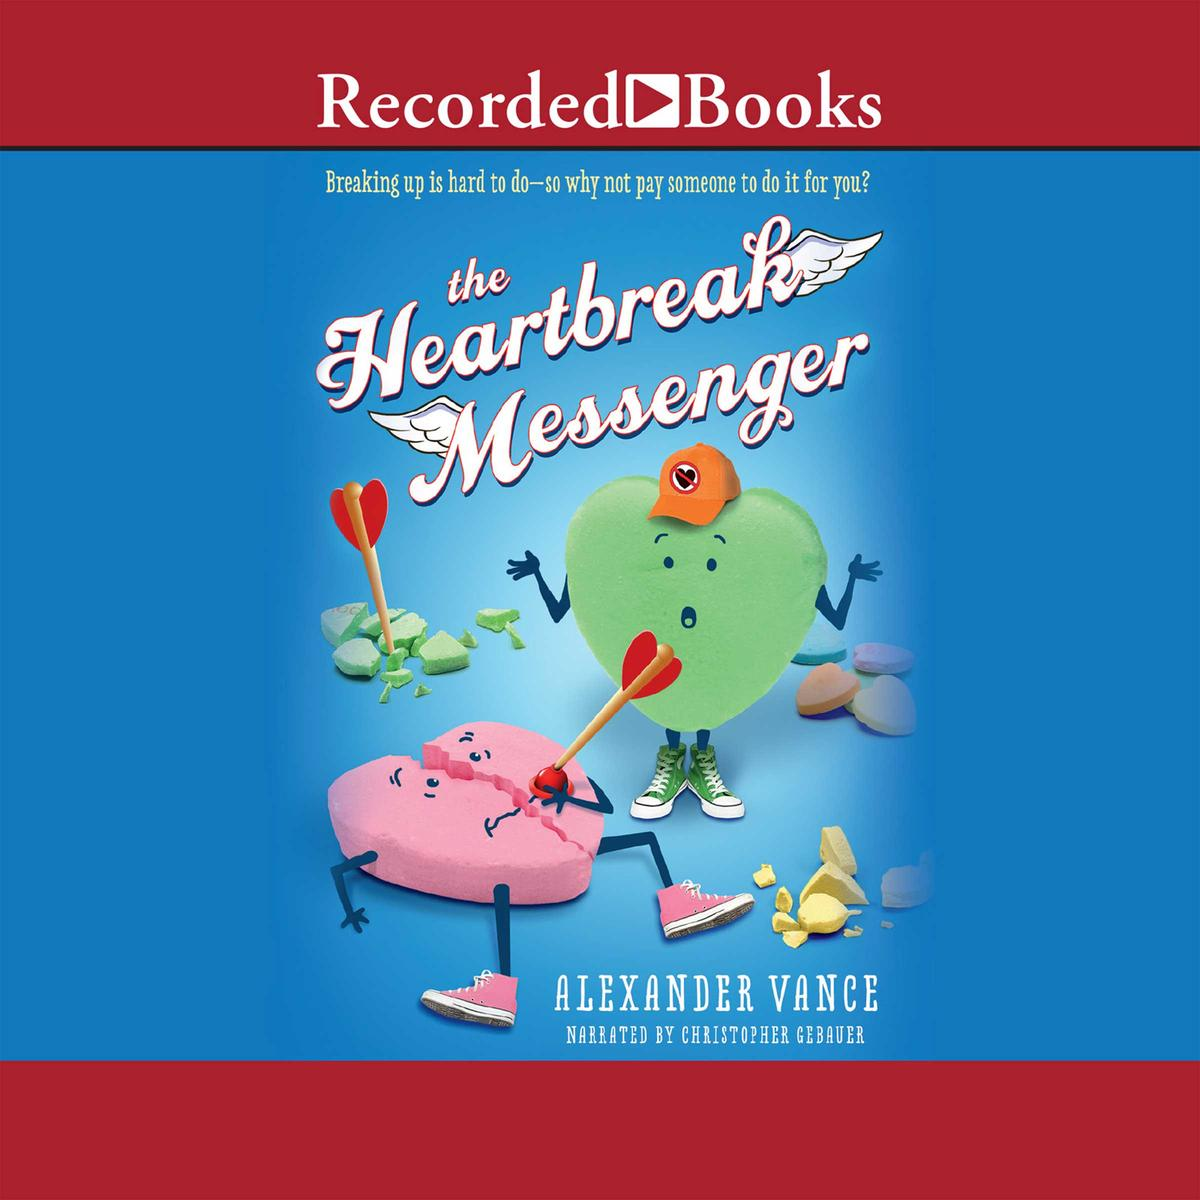 Heartbreak Messenger - Audiobook